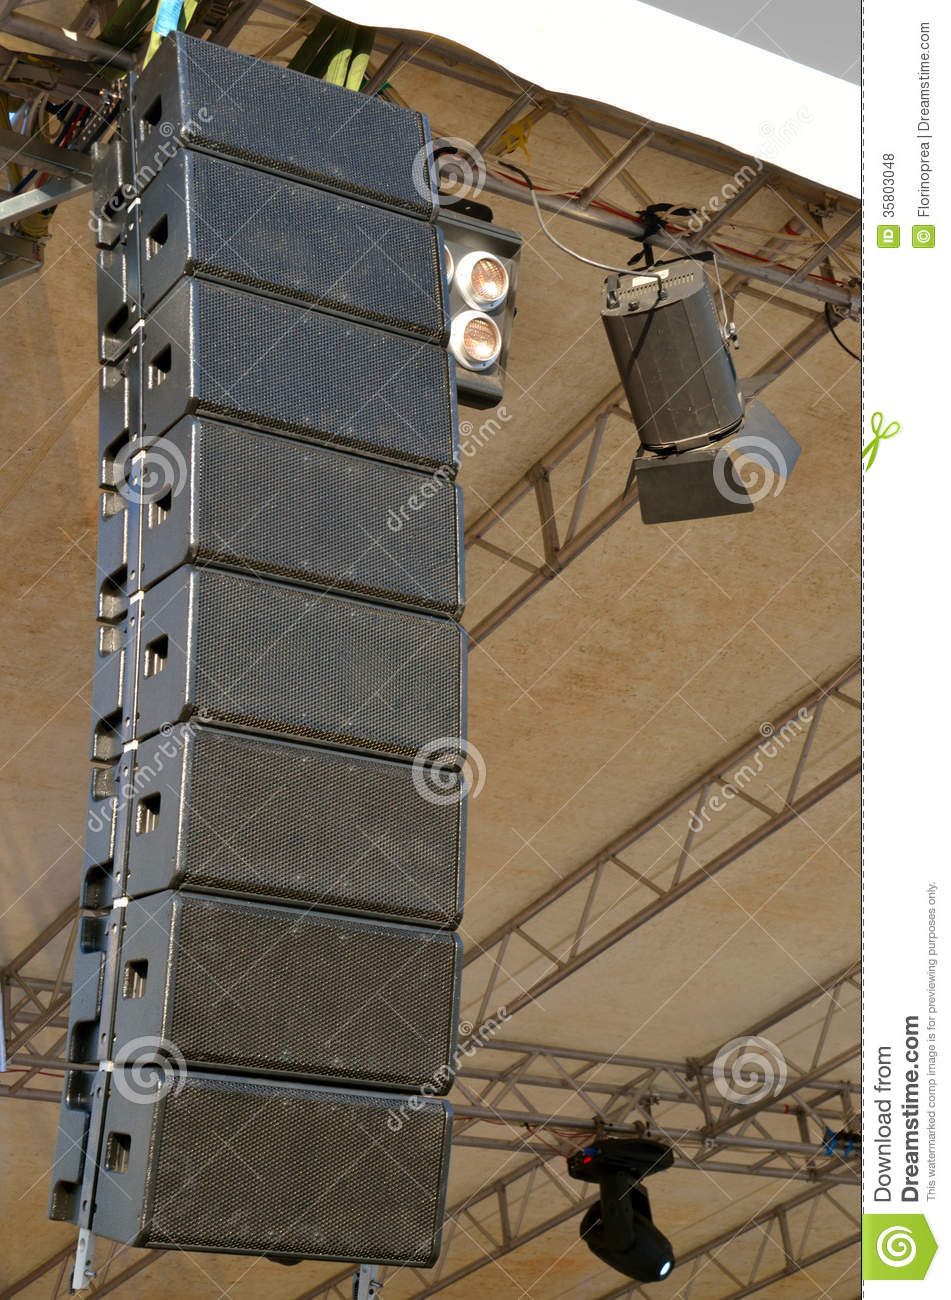 Speakers At Outdoors Concert Royalty Free Stock Photos  Image 35803048